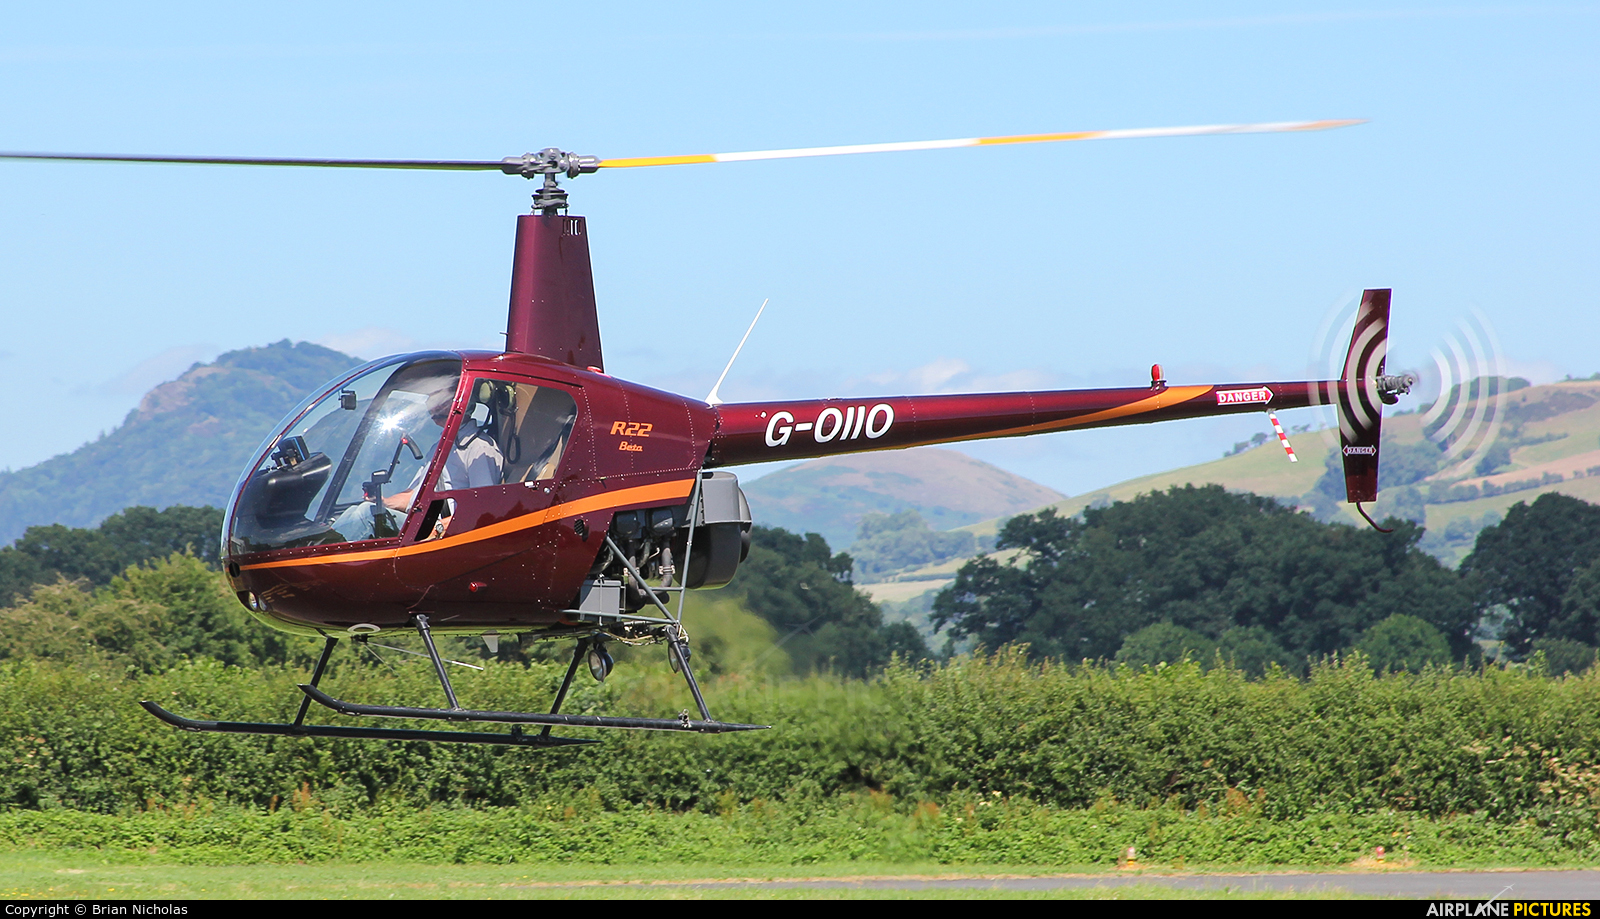 Whizzard Helicopters G-OIIO aircraft at Welshpool